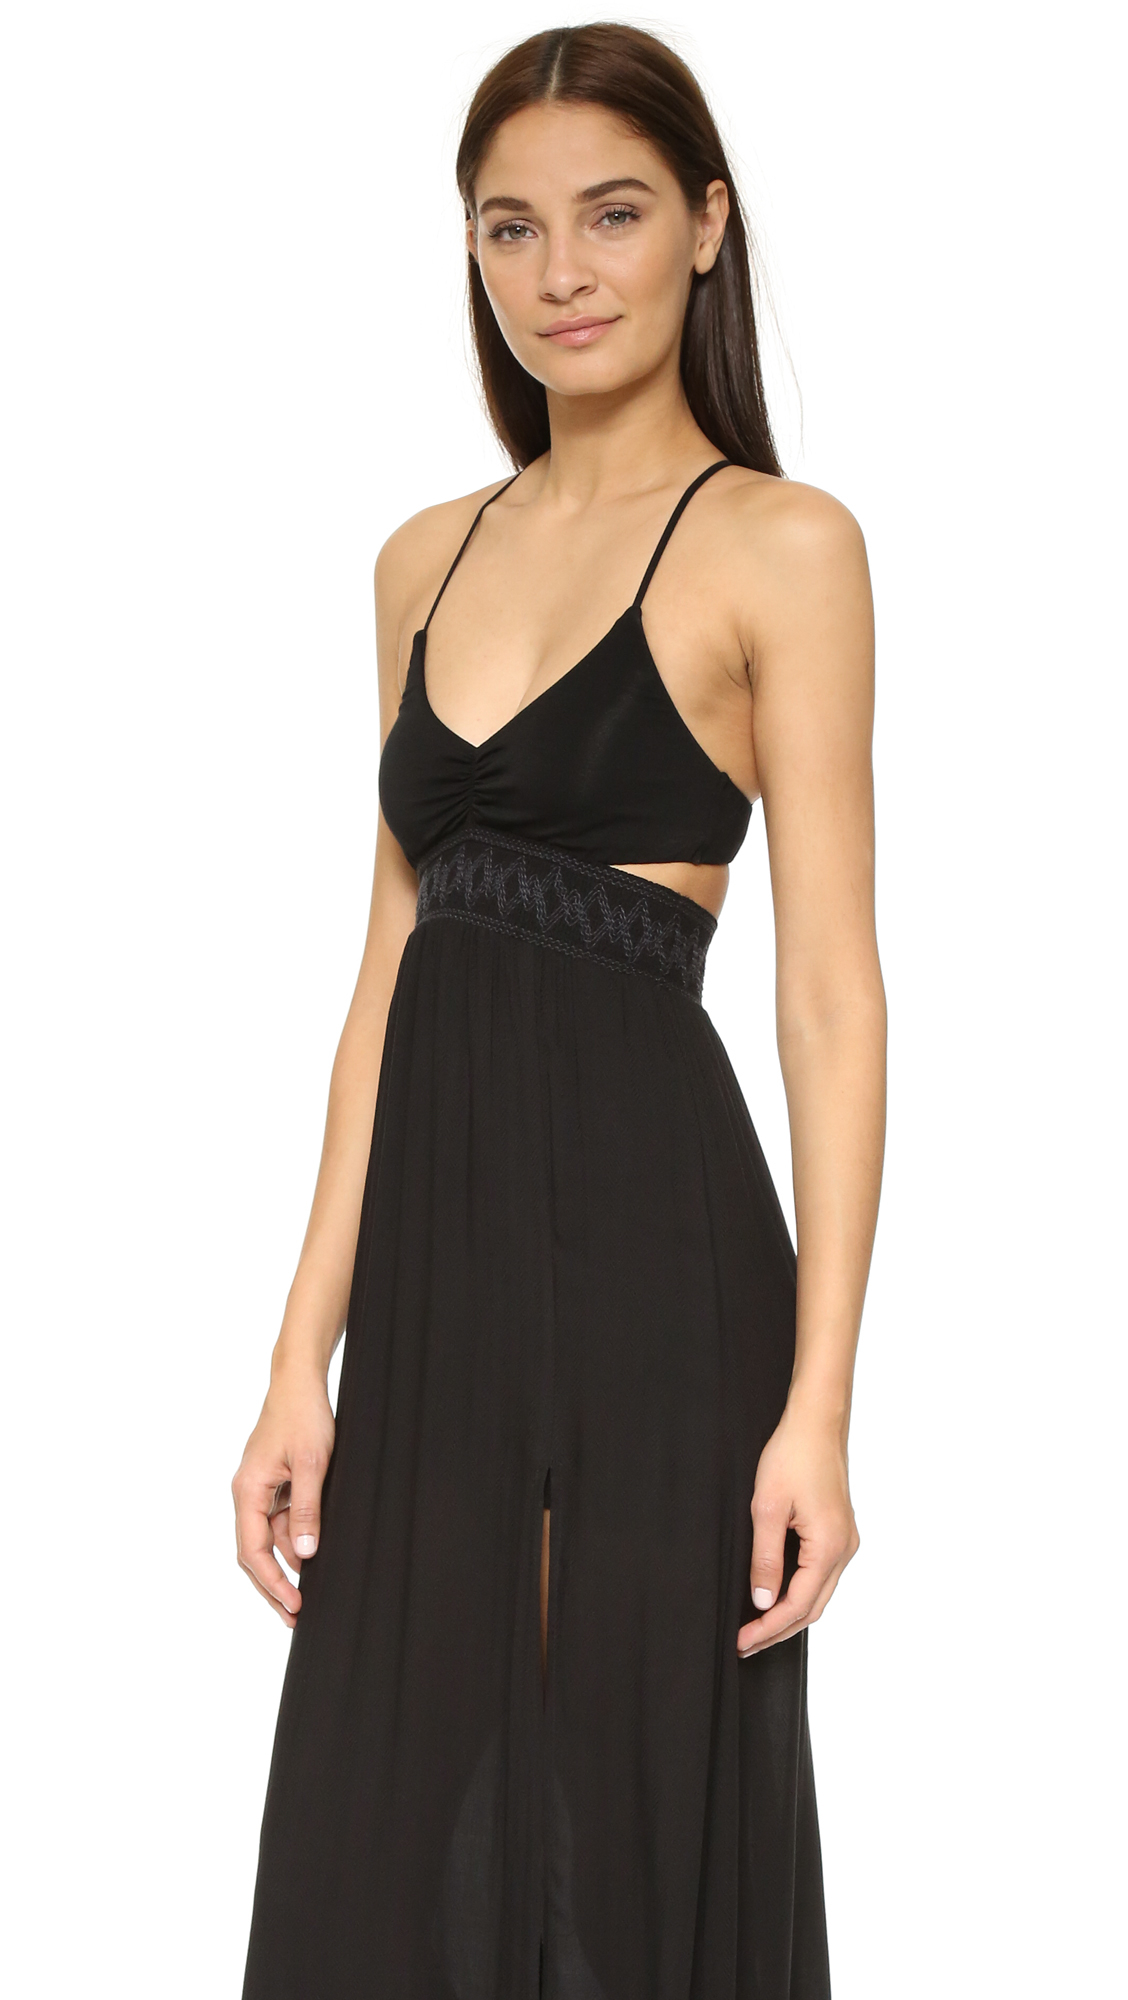 L*space Femme Cutout Maxi Dress in Black | Lyst